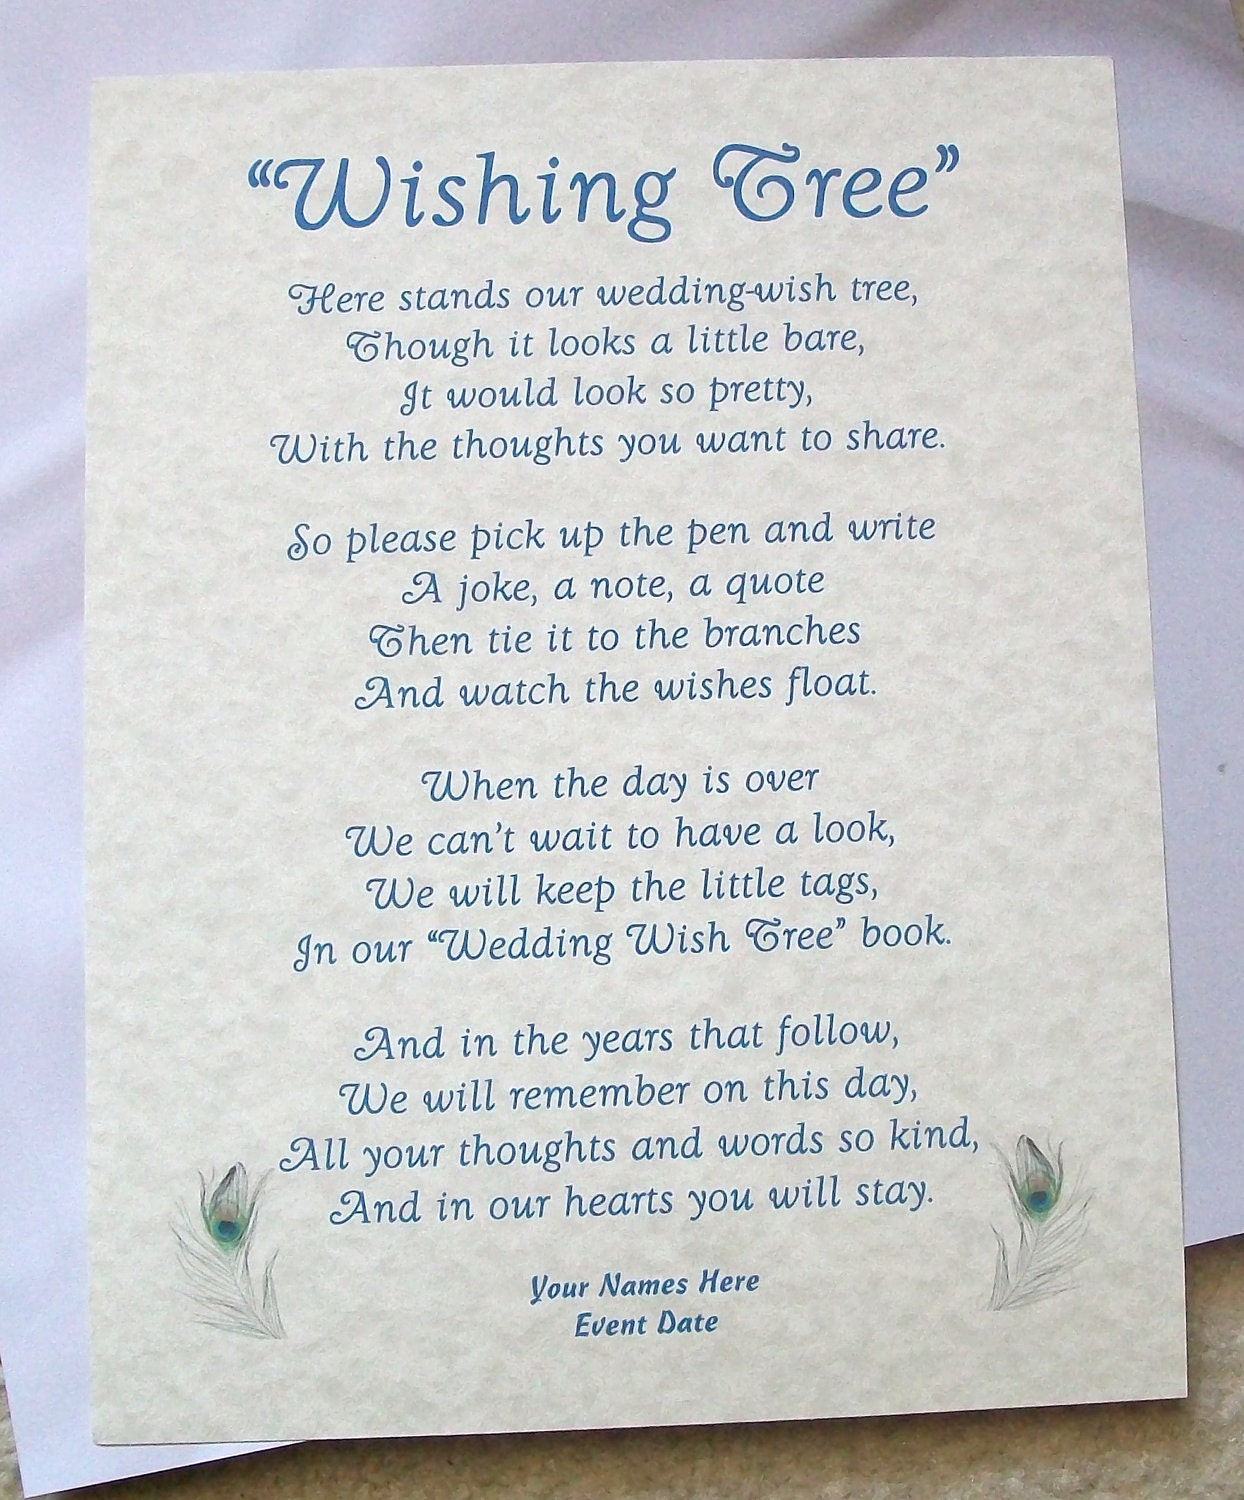 Wishing Tree Tags Instructions Sign Rustic Peacock Theme